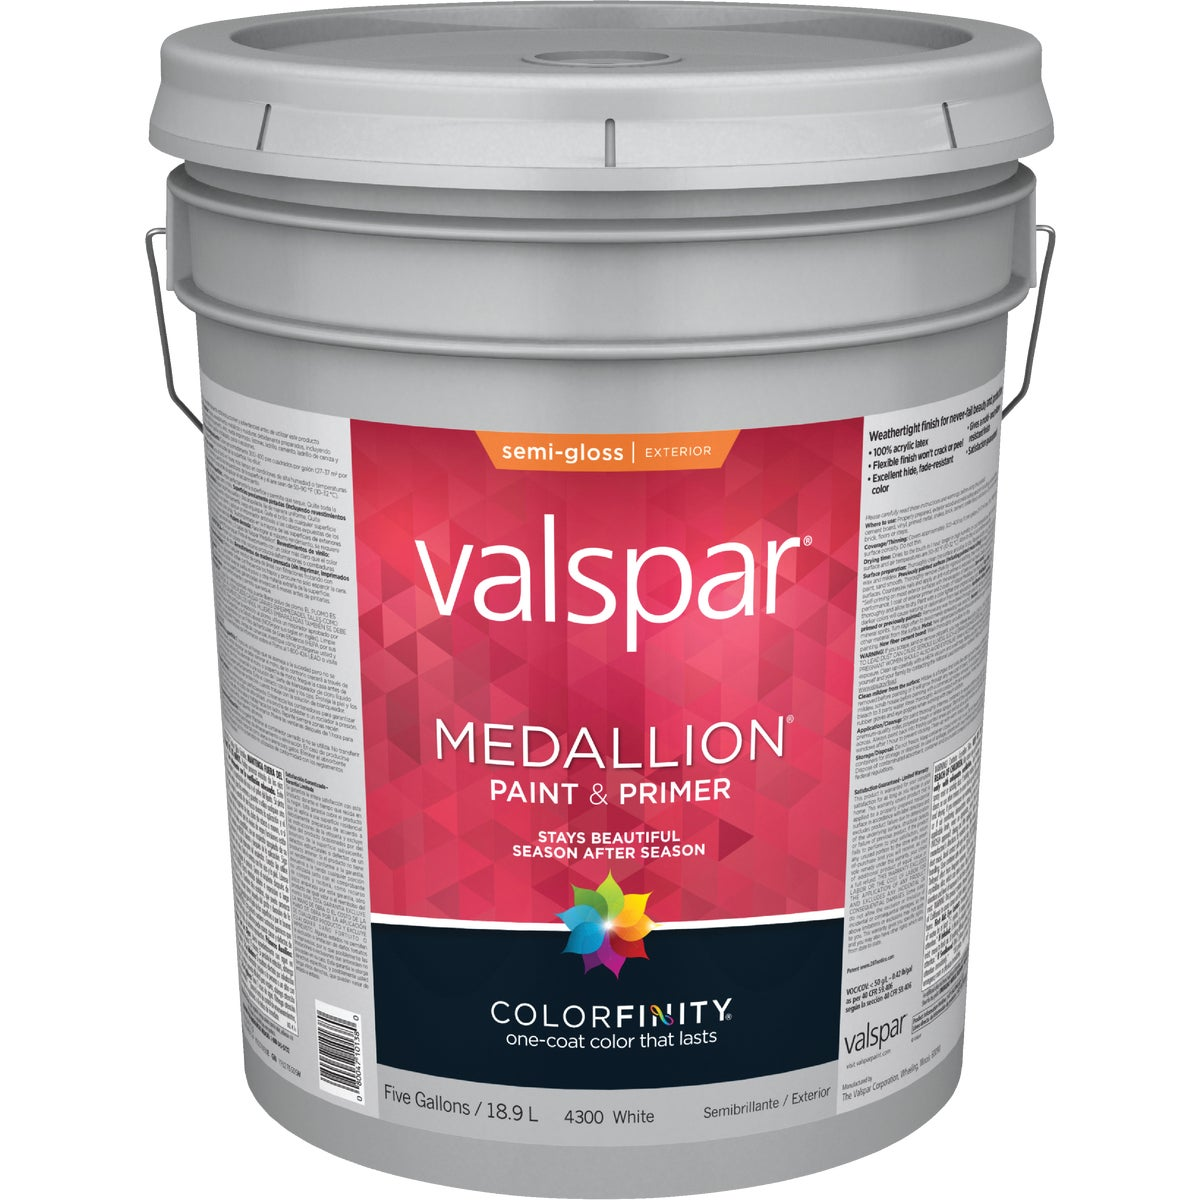 EXT S/G WHITE PAINT - 027.0004300.008 by Valspar Corp